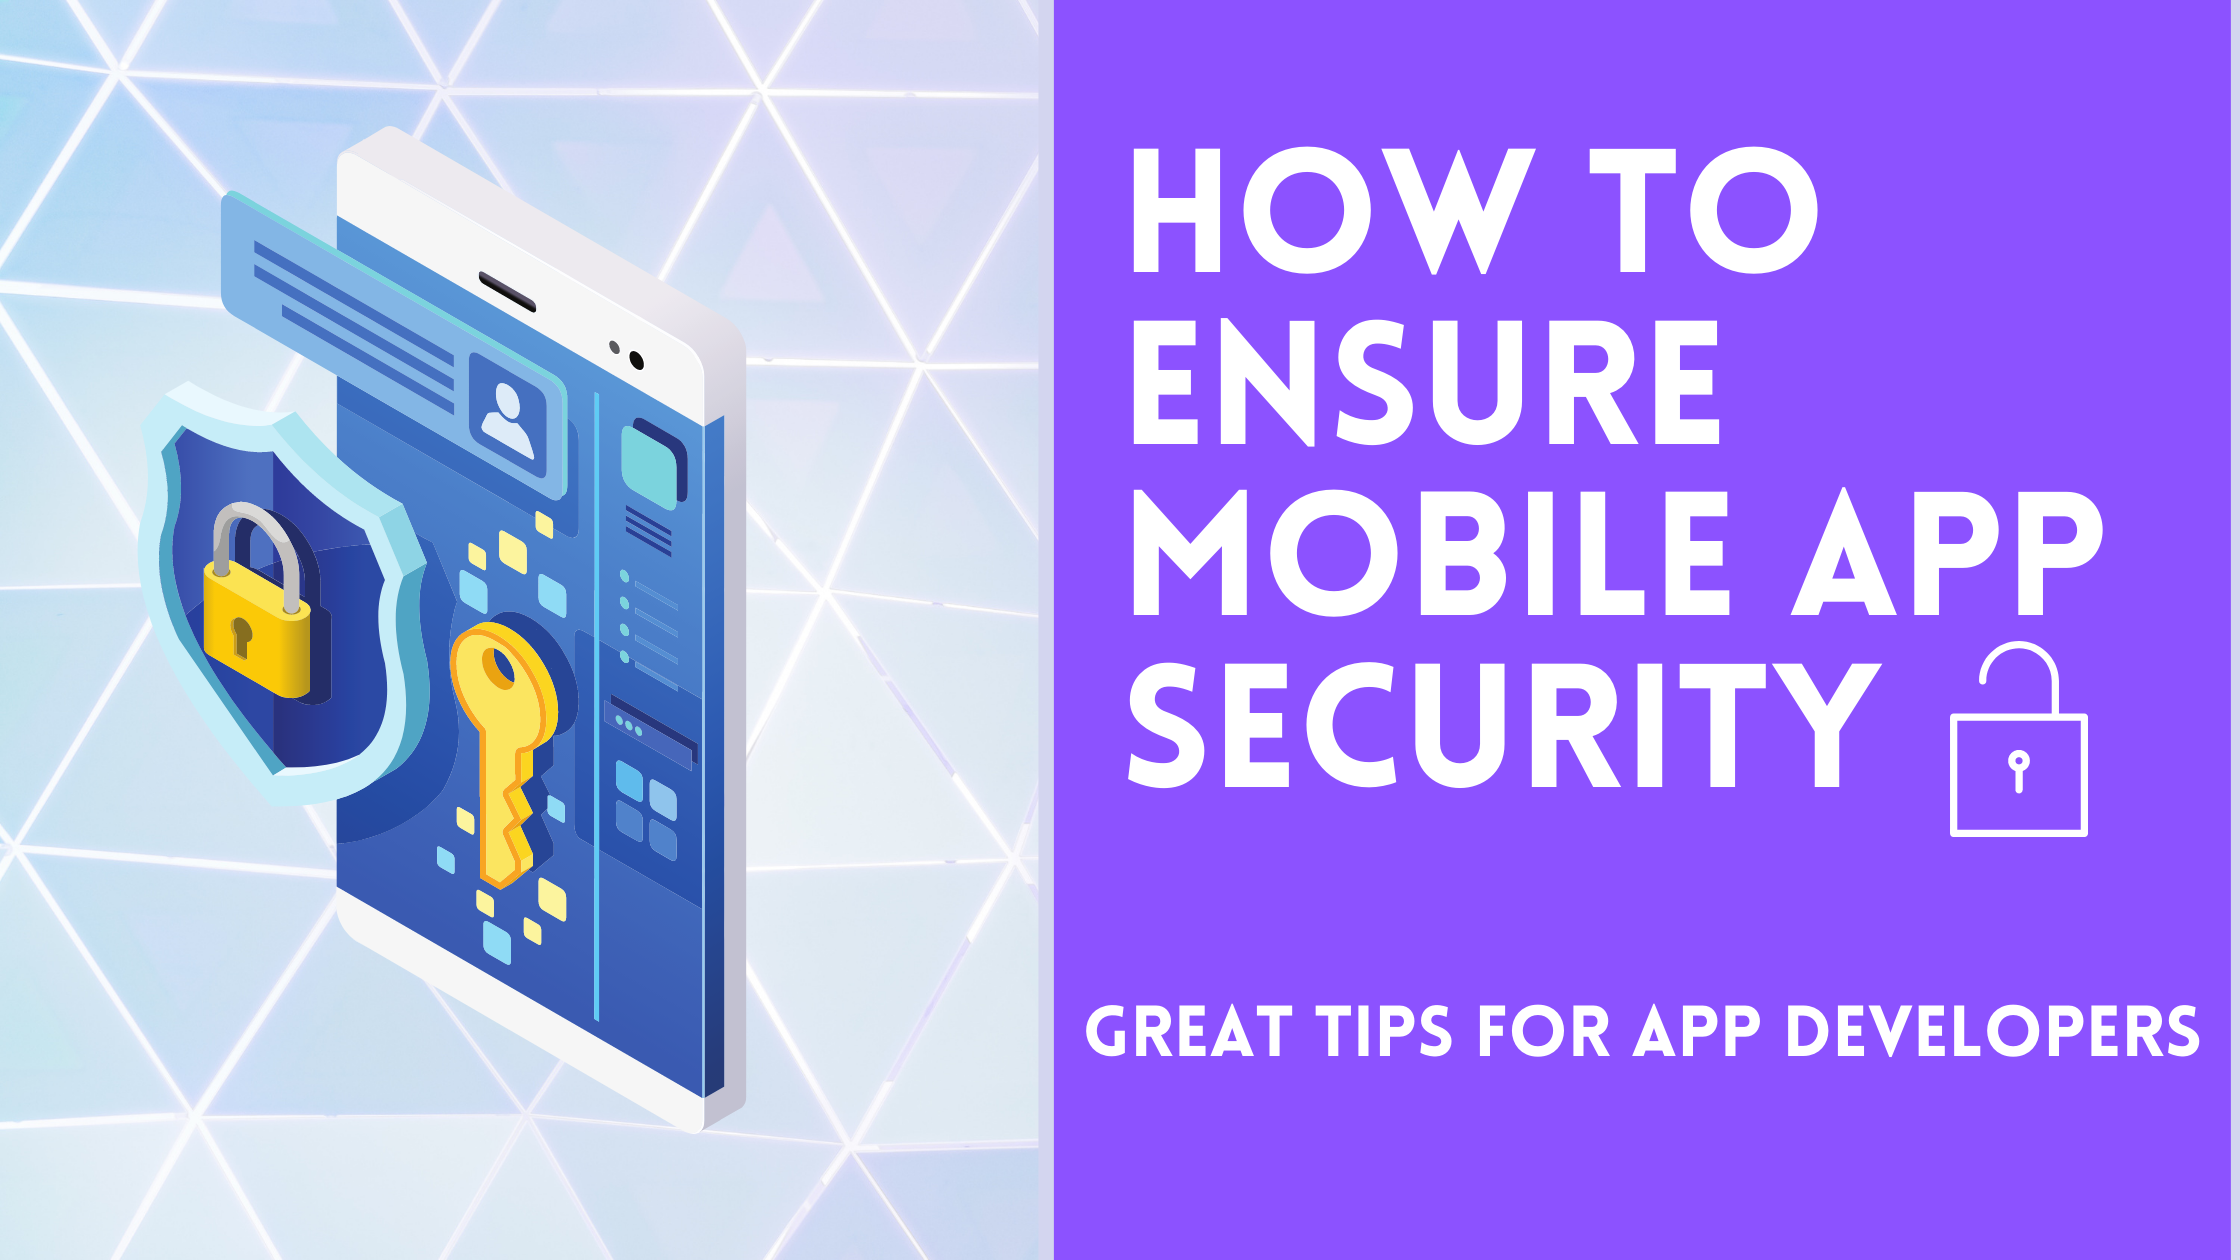 How to Ensure Mobile App Security